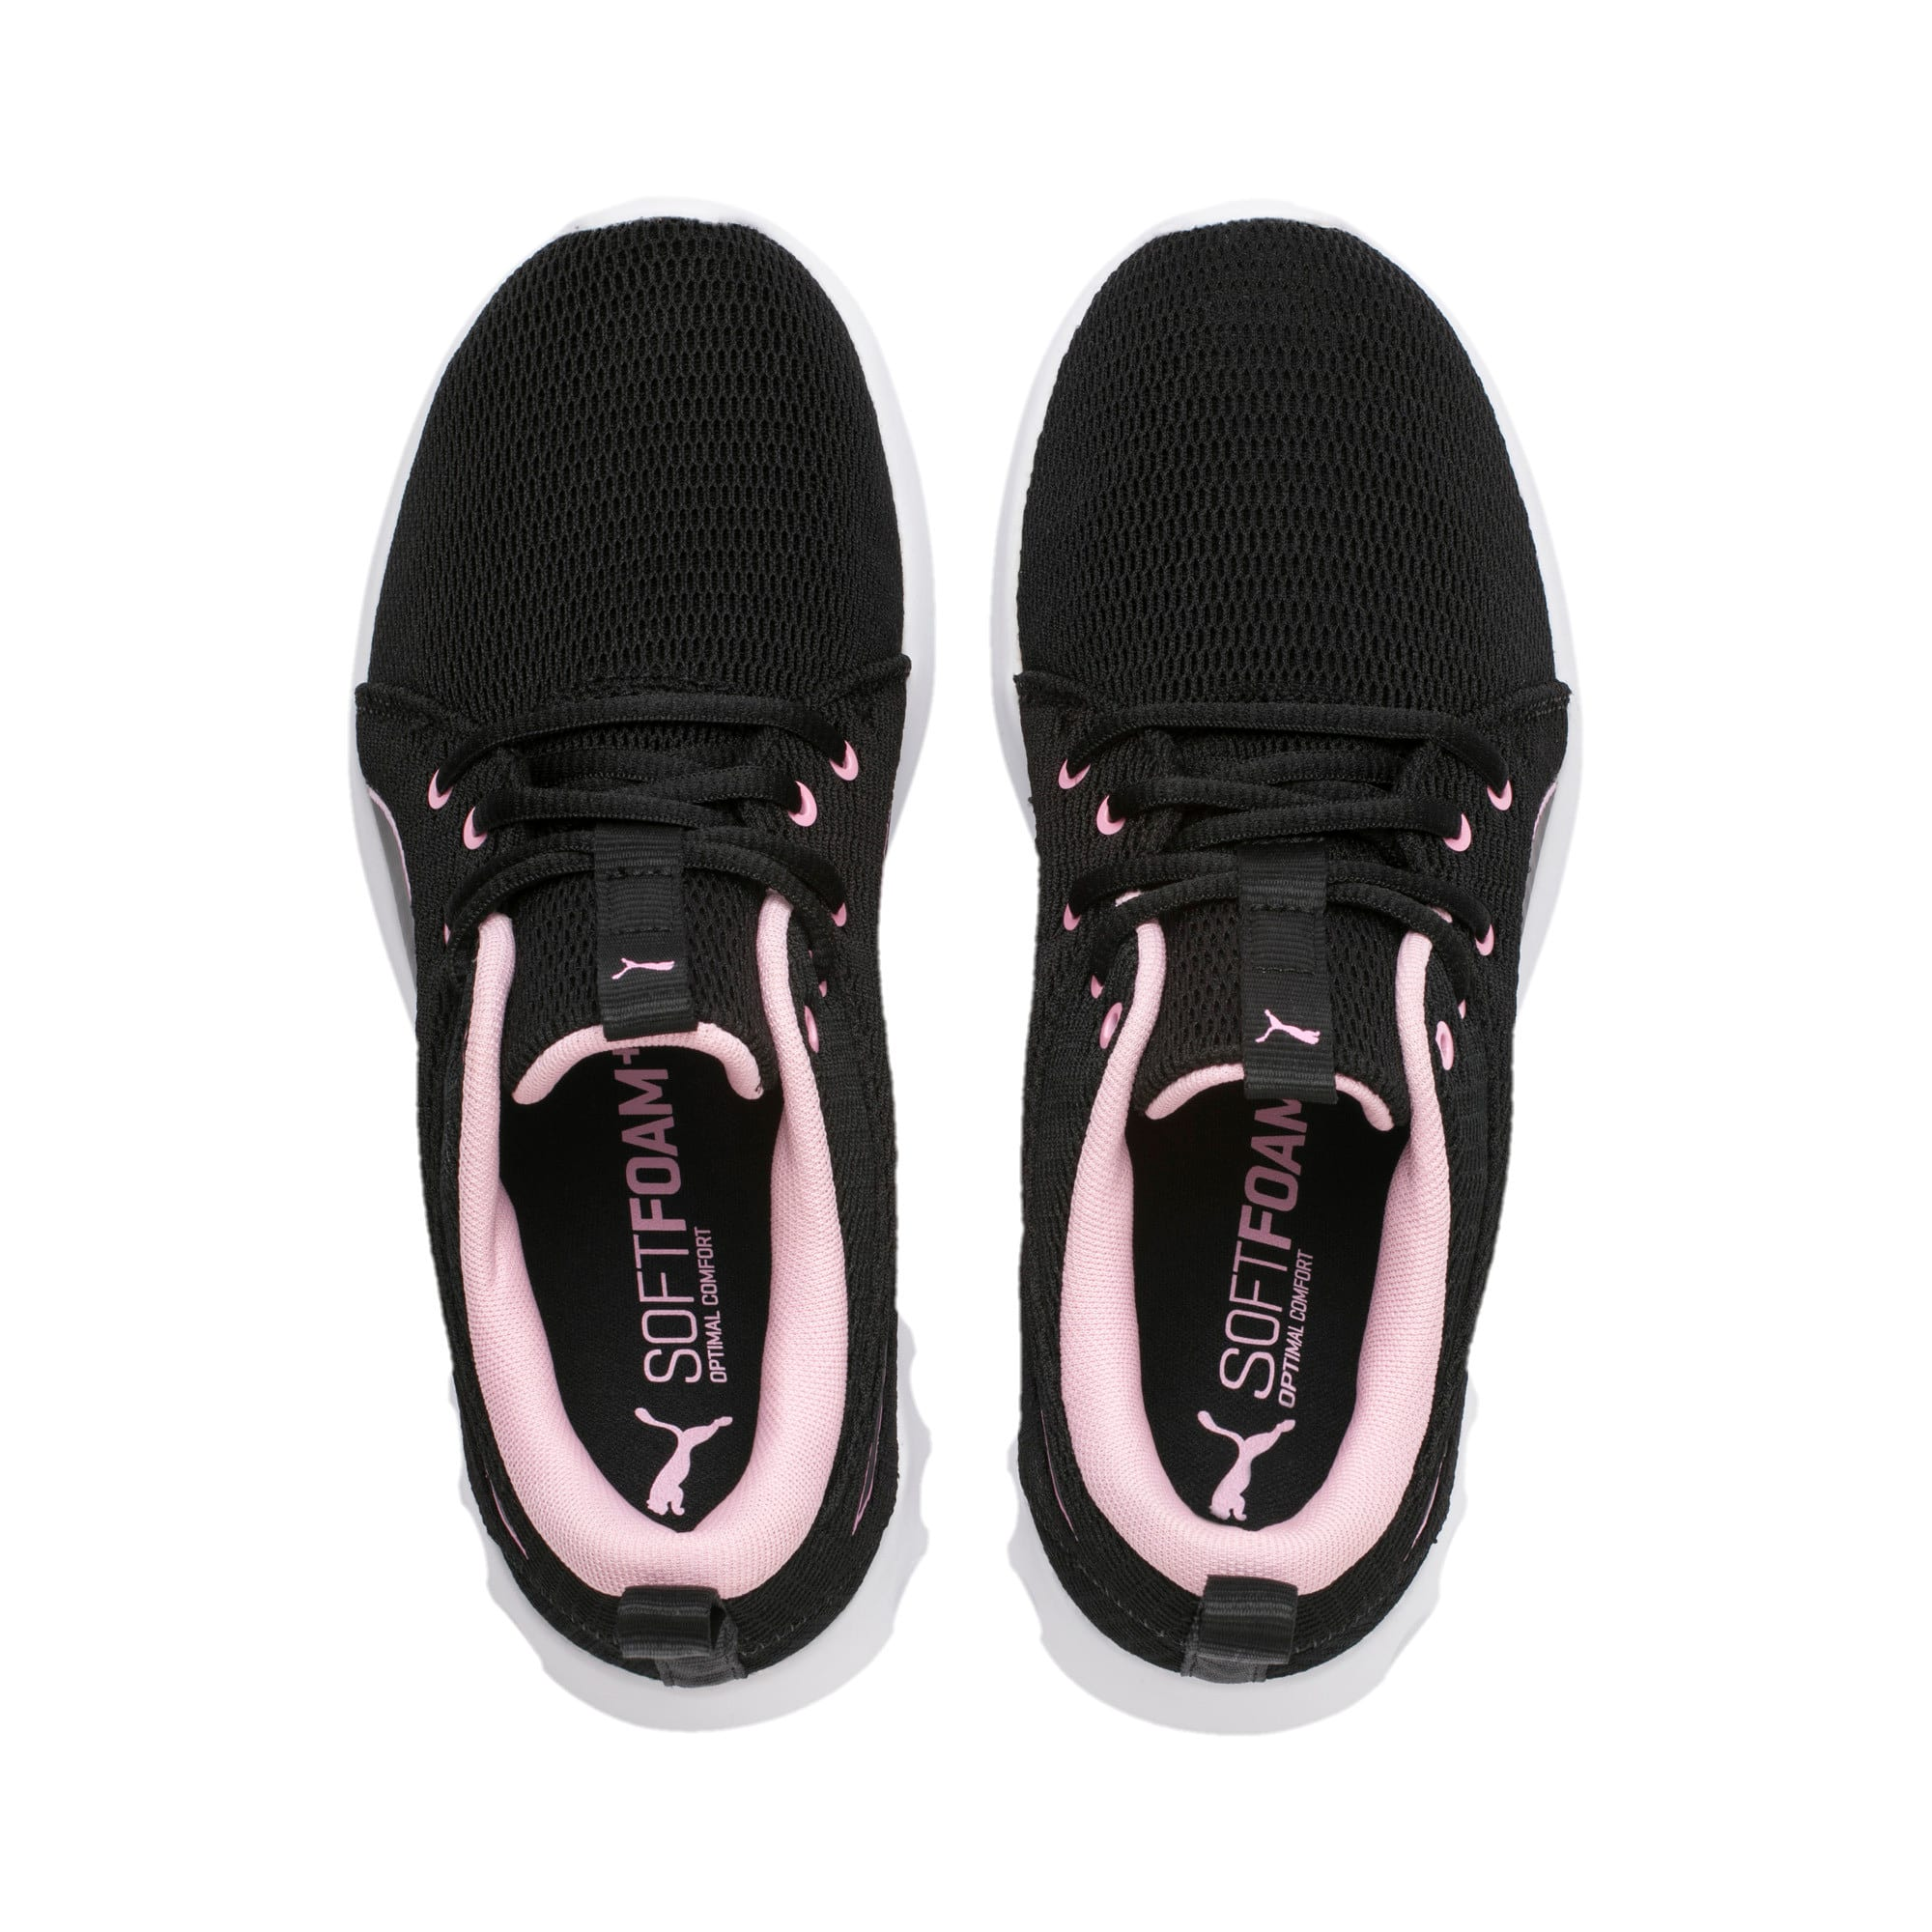 Thumbnail 6 of Carson 2 New Core Women's Trainers, Puma Black-Pale Pink, medium